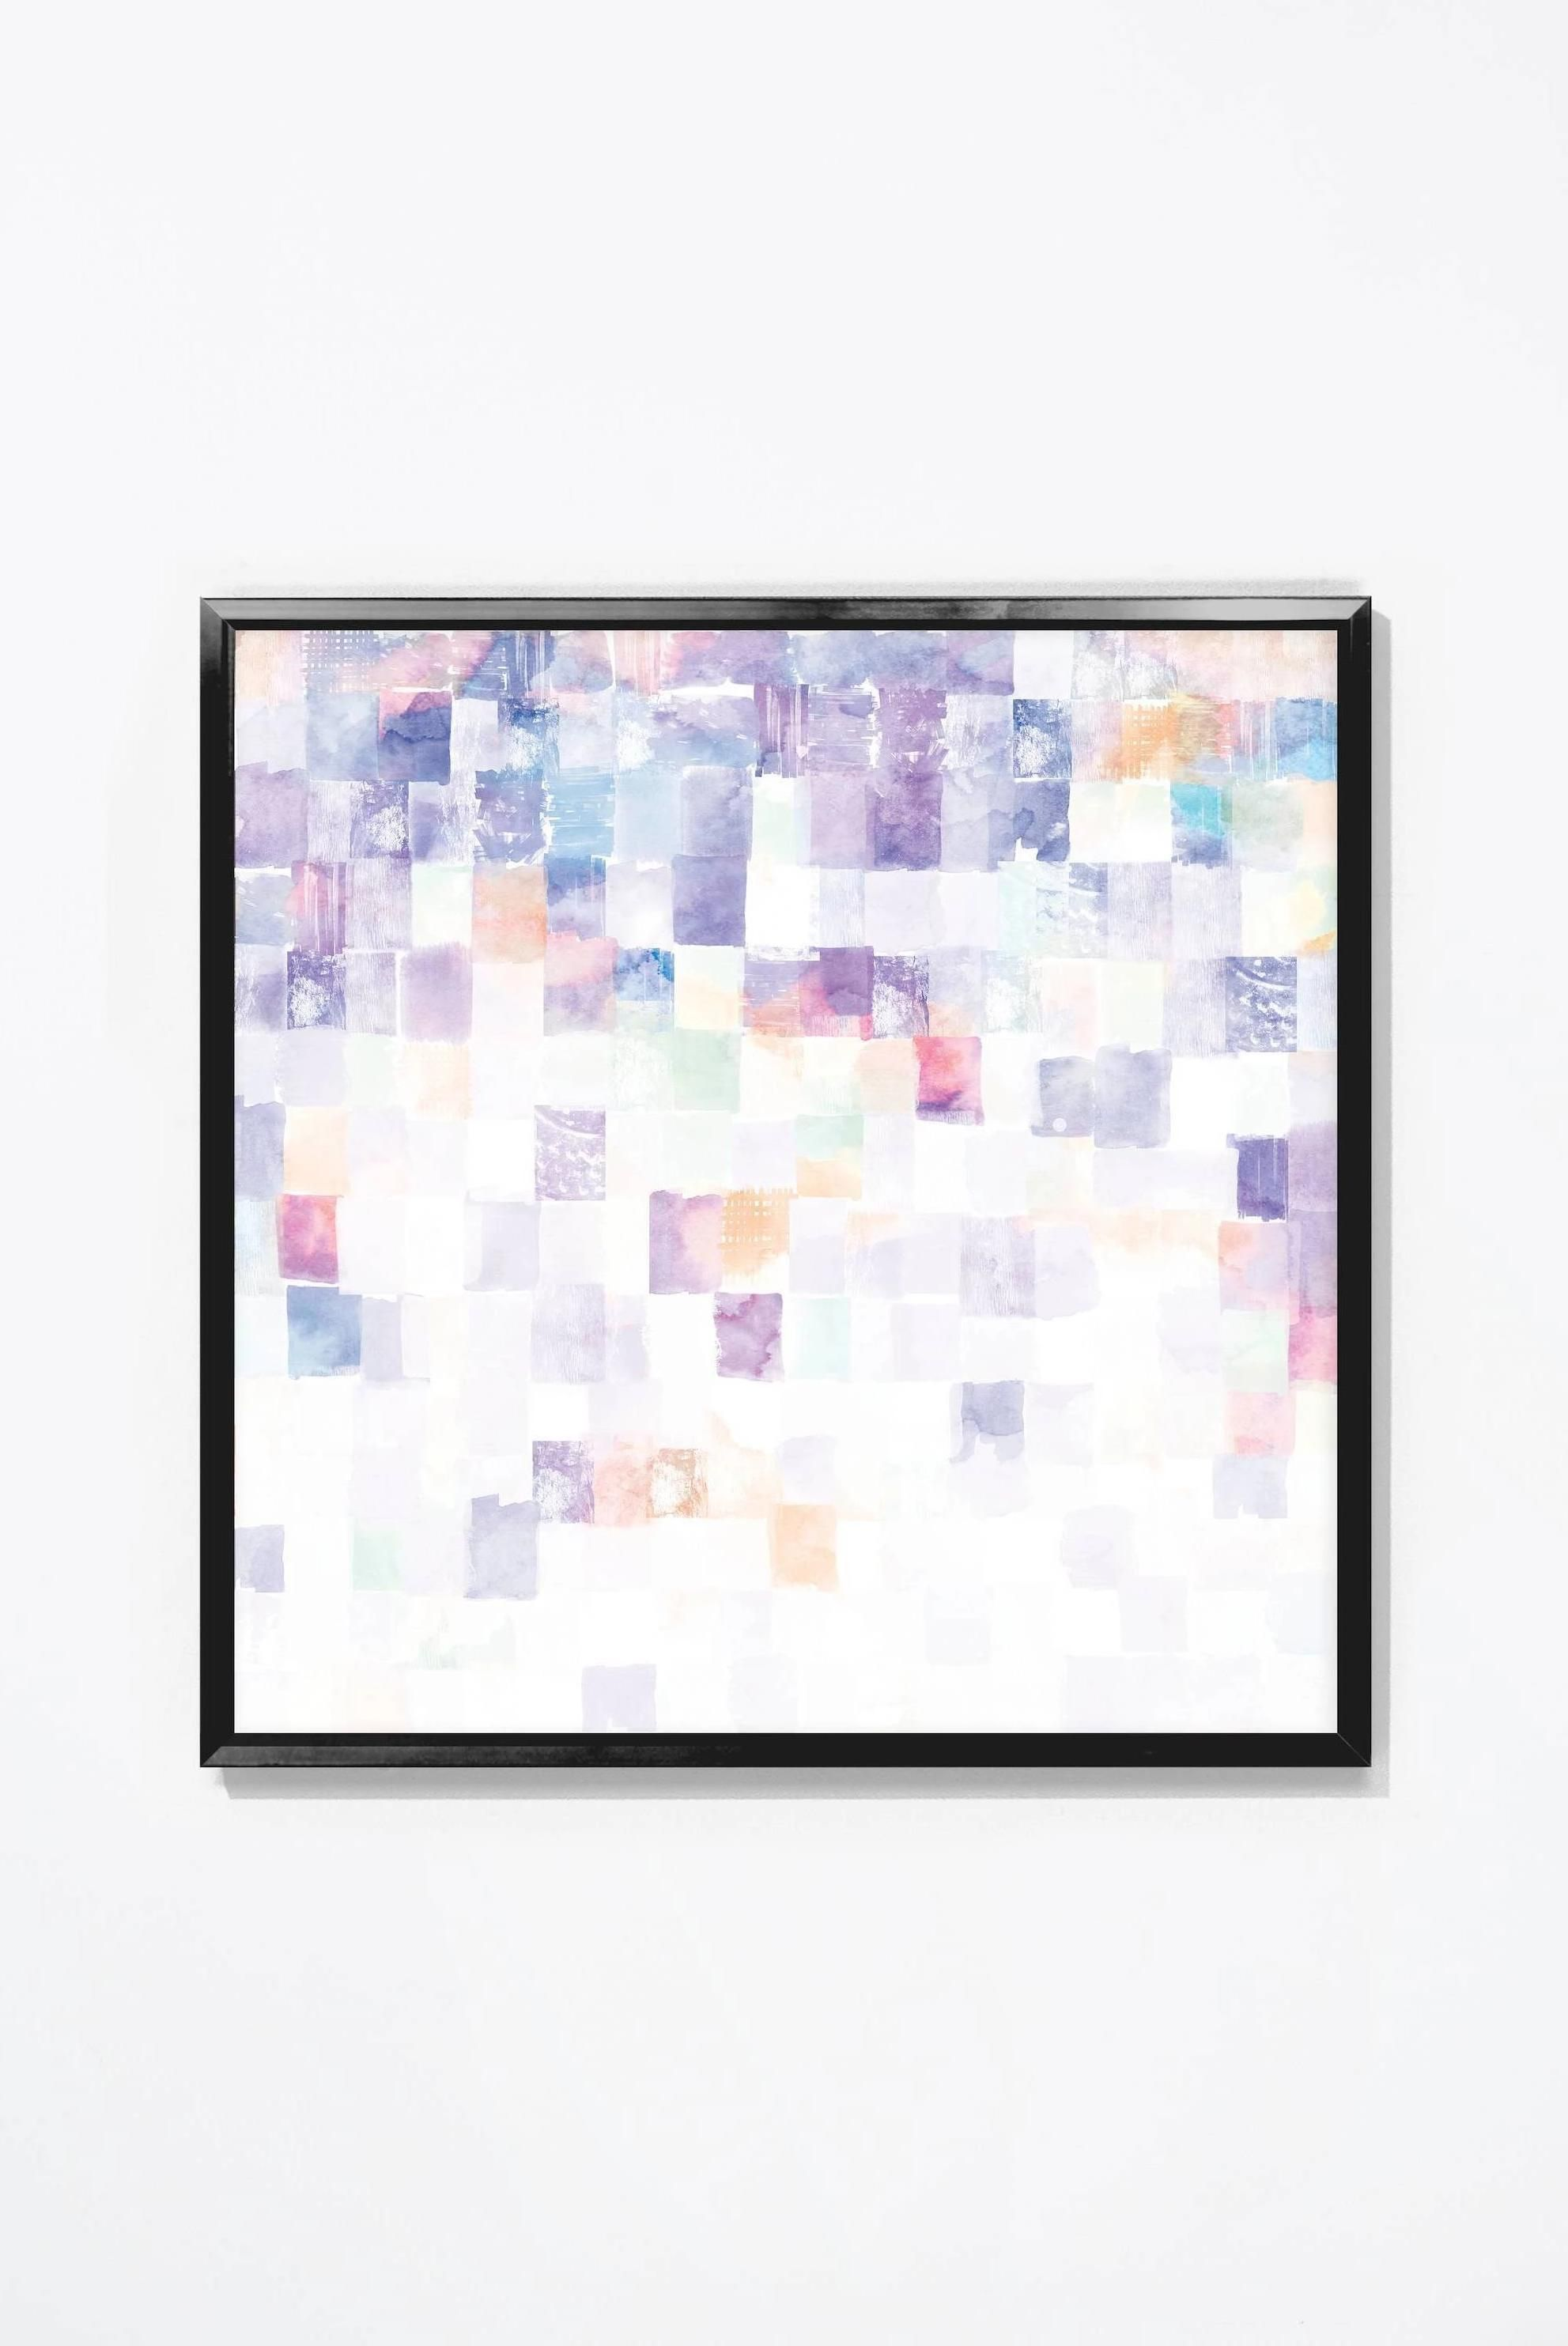 <p>Pretty cool, right? The Square Up might be a square, but it sure doesn't act like one.A Wall Art by Whom Home, the North American manufacturer of sustainable, handmade home furniture and decor.</p>. Square Up Wall Art, Black / 40x40